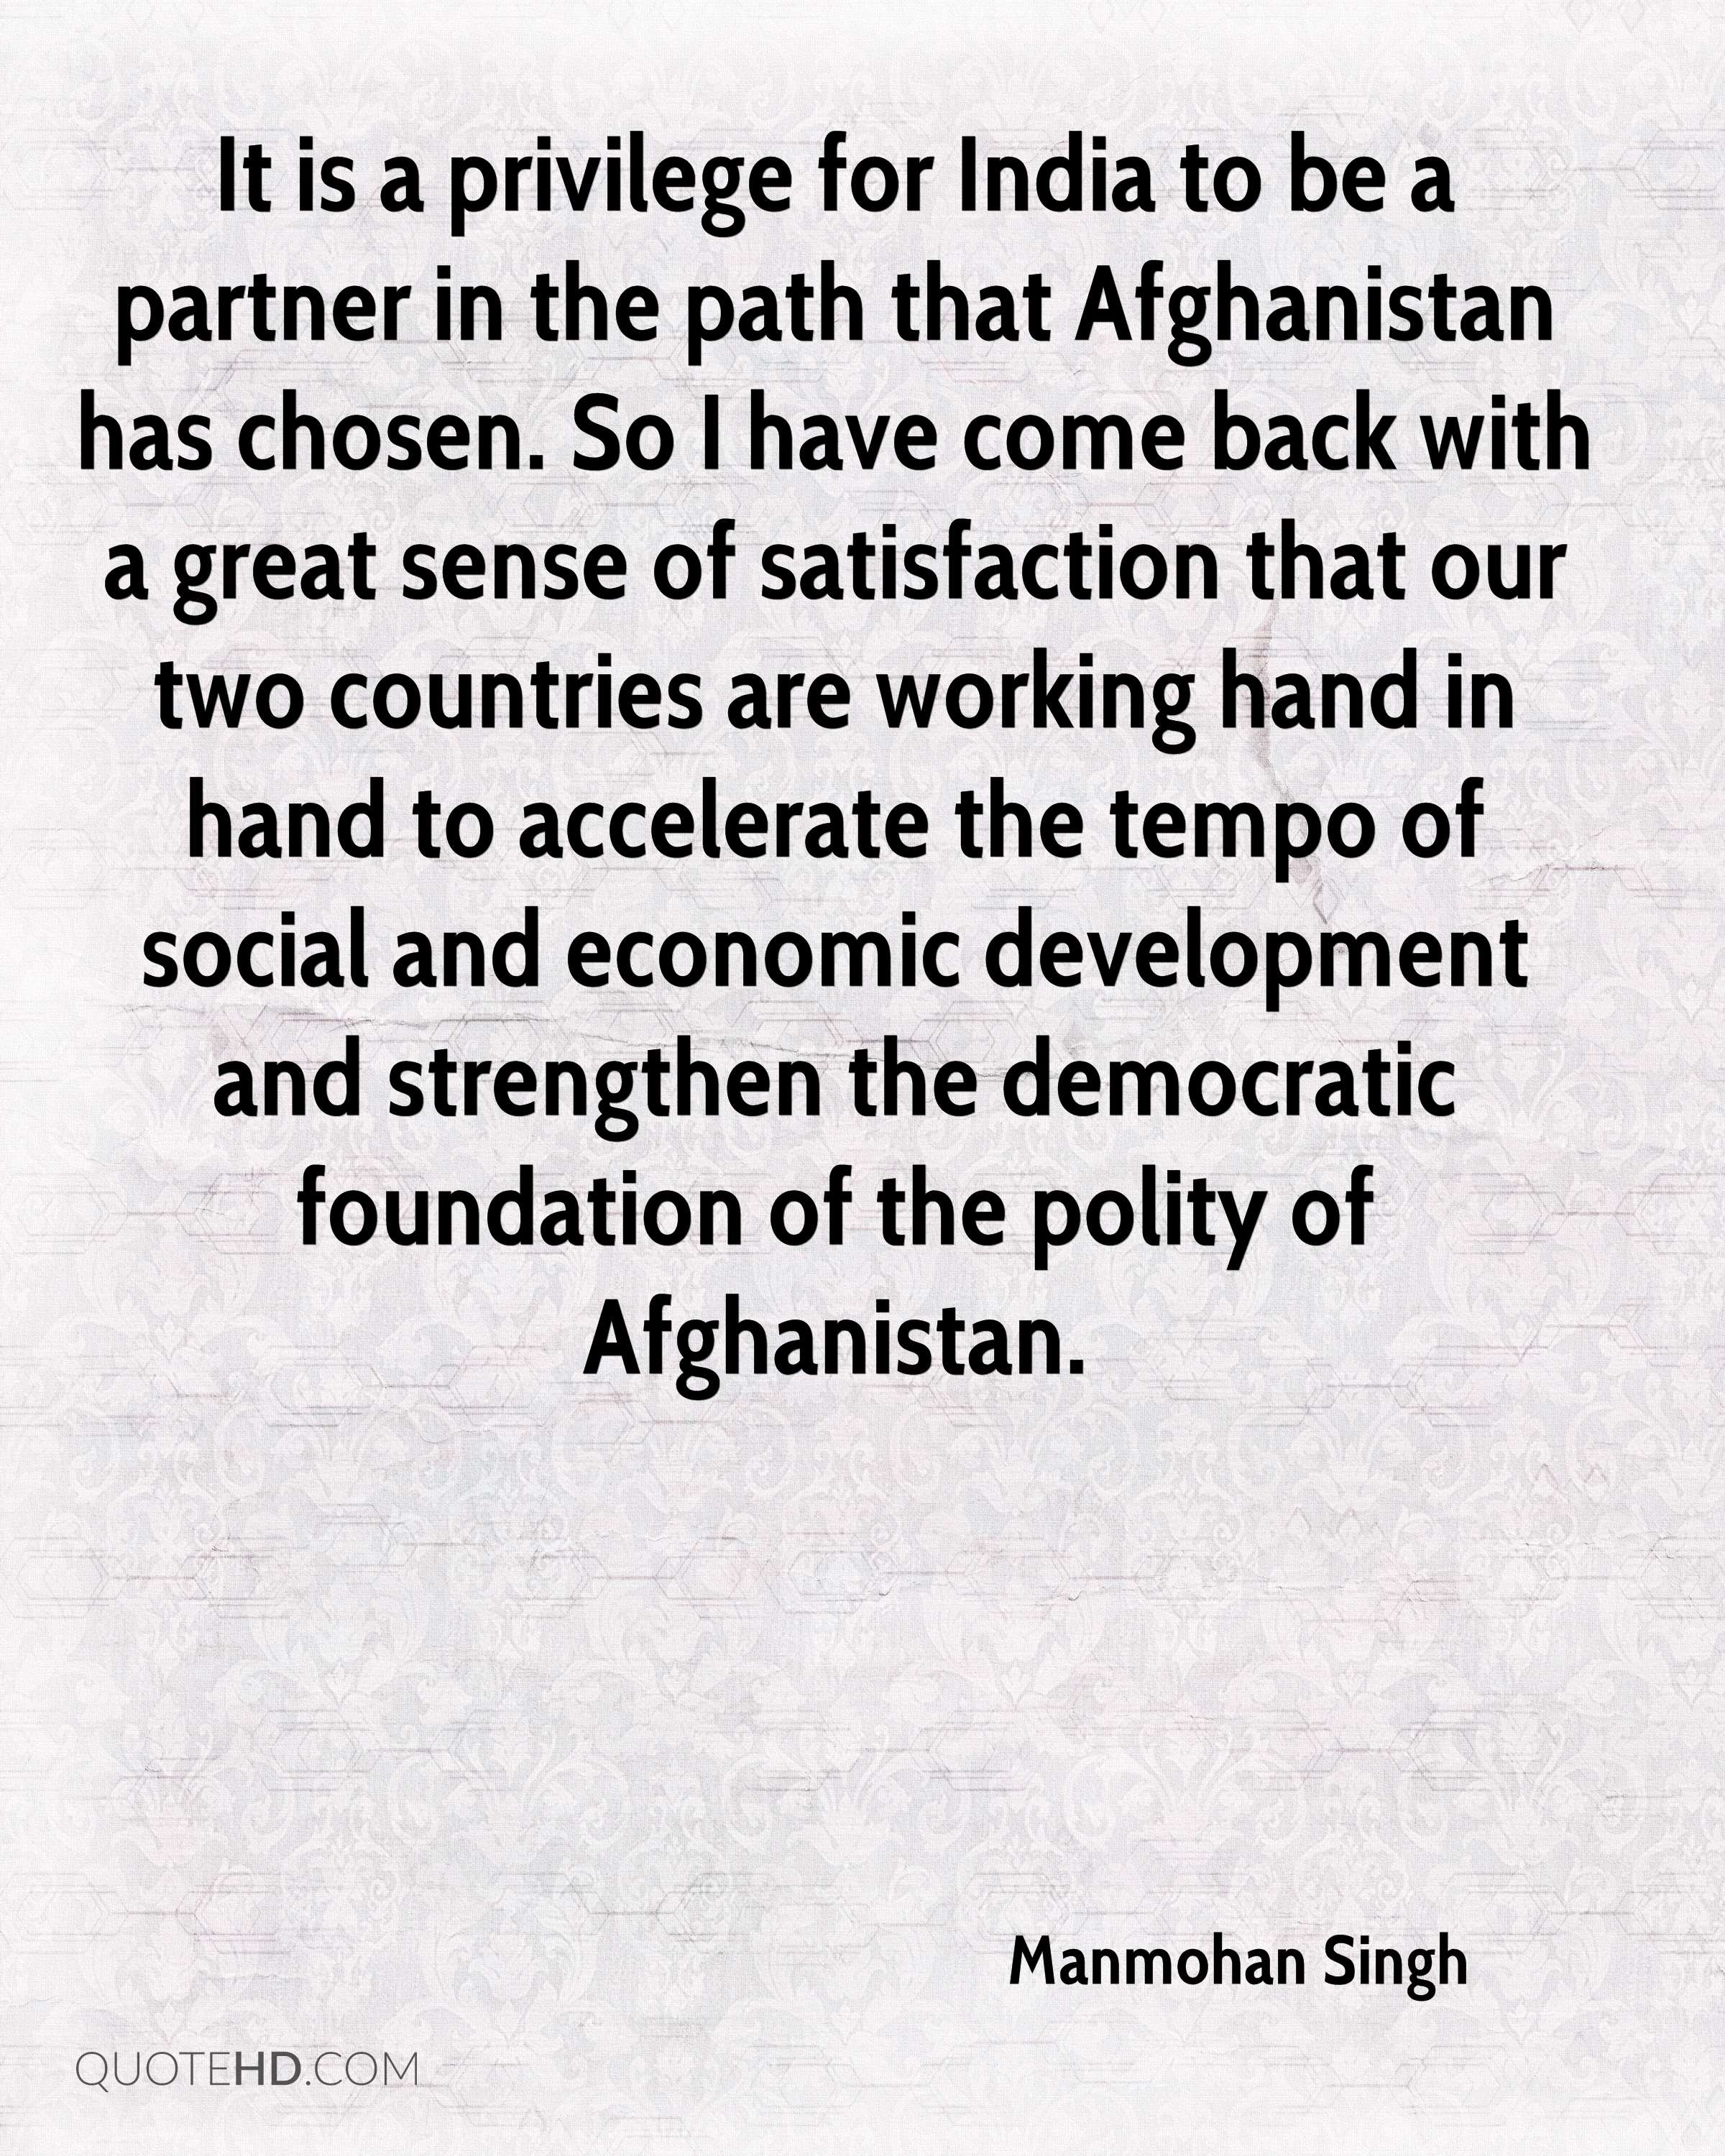 It is a privilege for India to be a partner in the path that Afghanistan has chosen. So I have come back with a great sense of satisfaction that our two countries are working hand in hand to accelerate the tempo of social and economic development and strengthen the democratic foundation of the polity of Afghanistan.